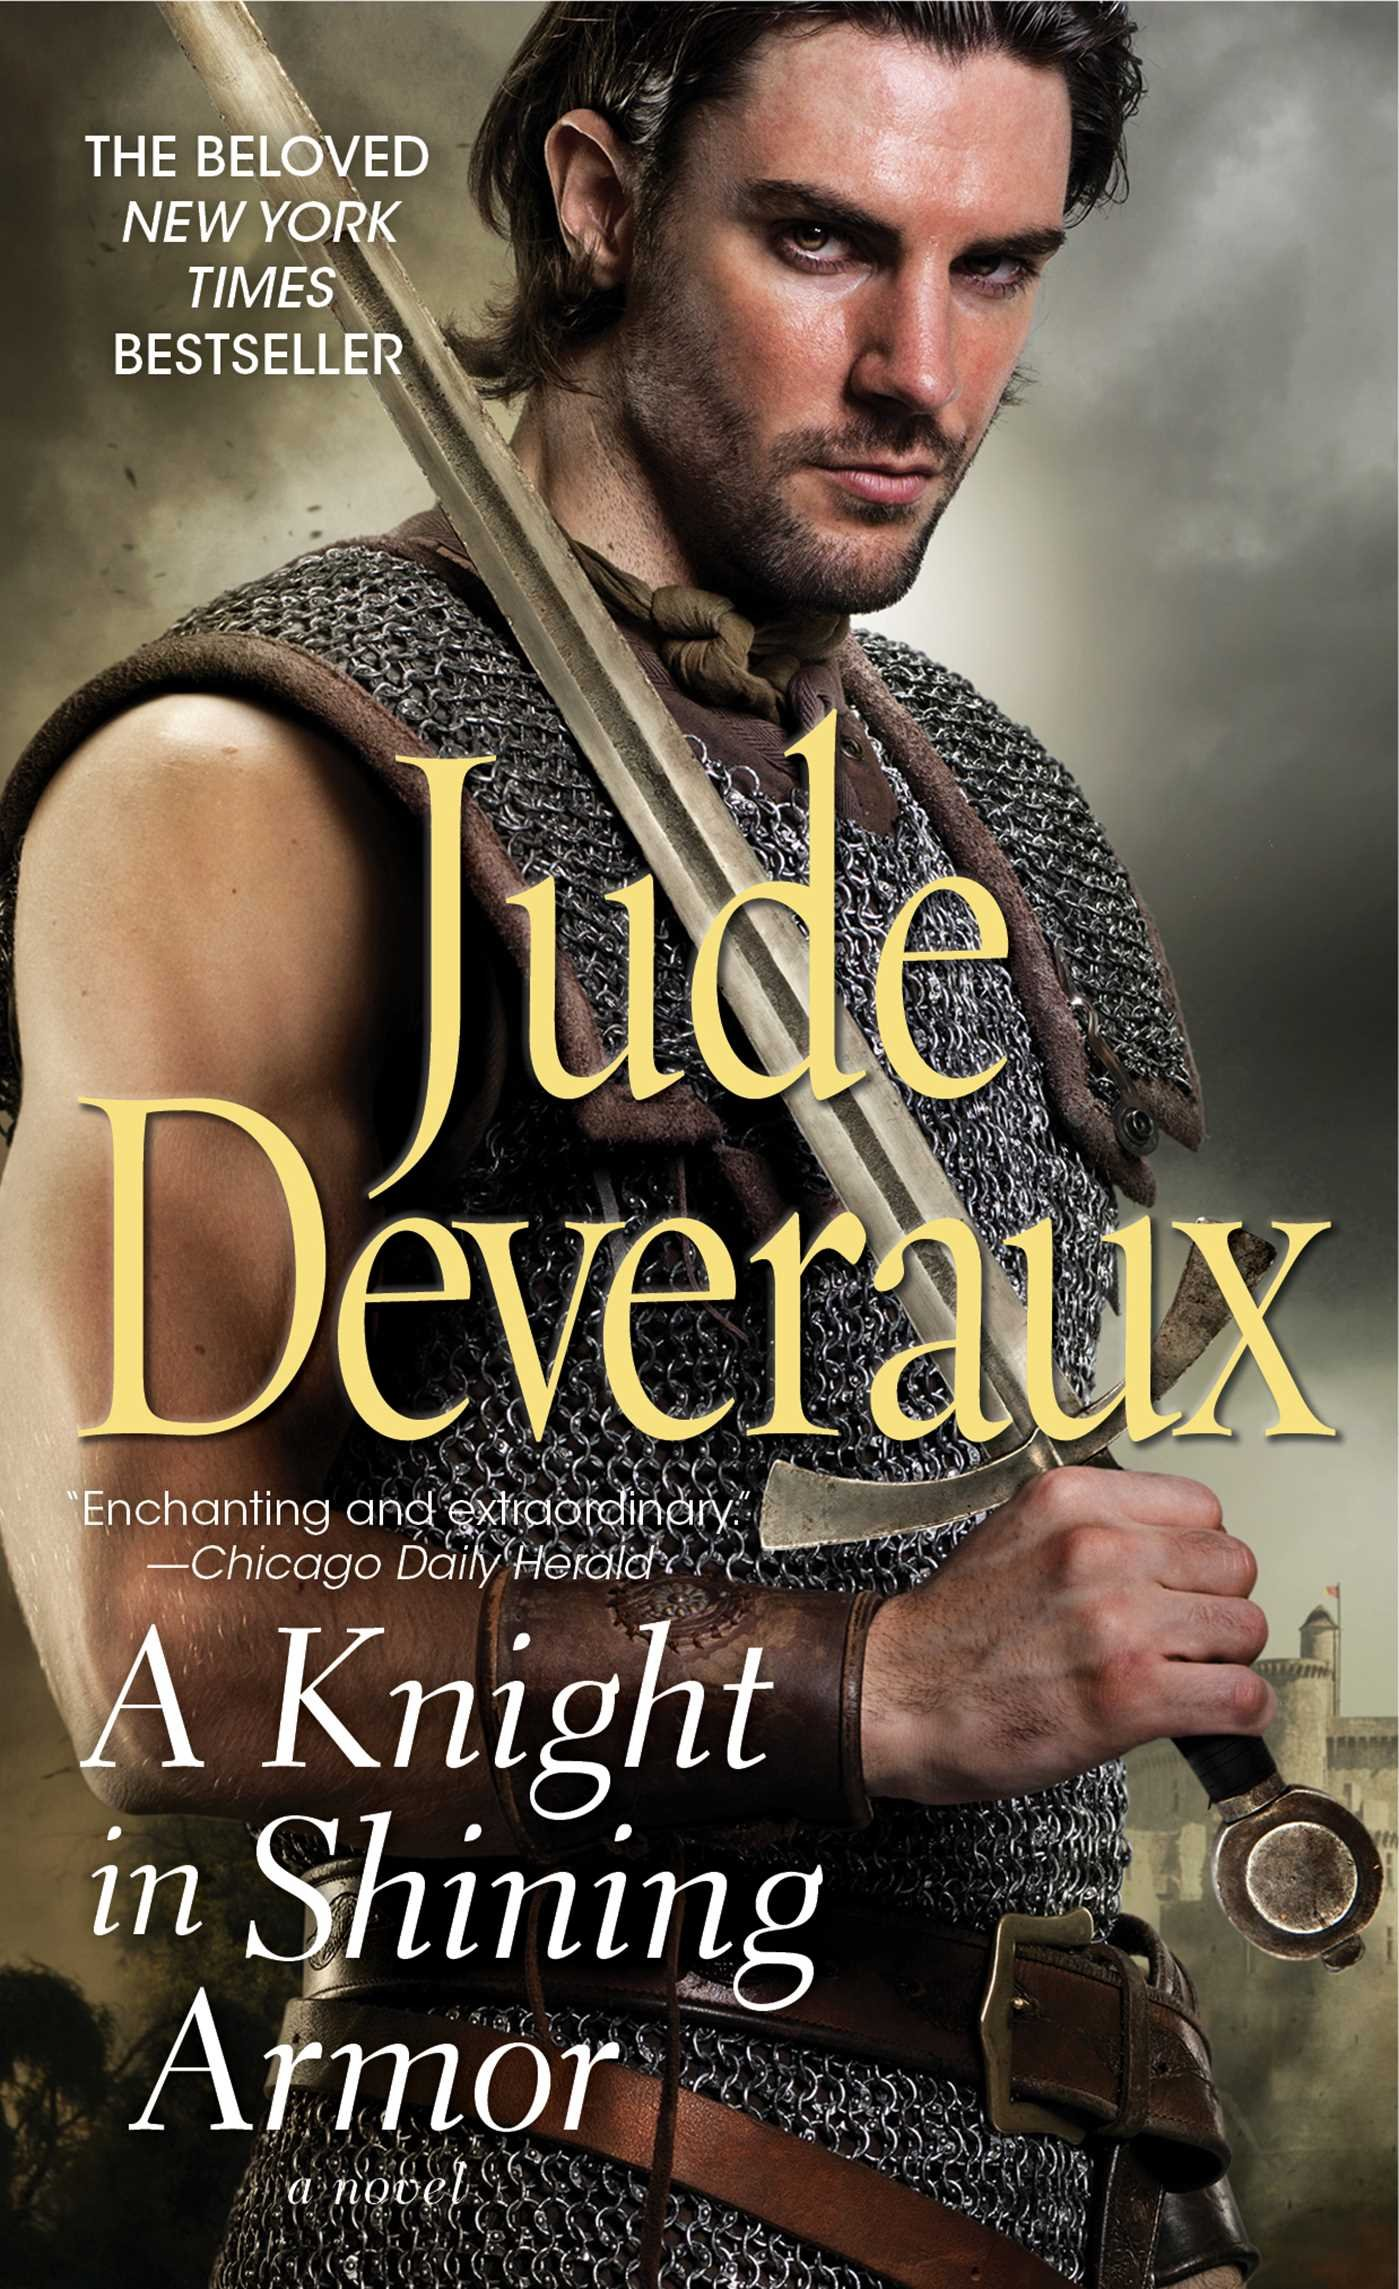 Amazon: A Knight In Shining Armor (9780743457262): Jude Deveraux: Books